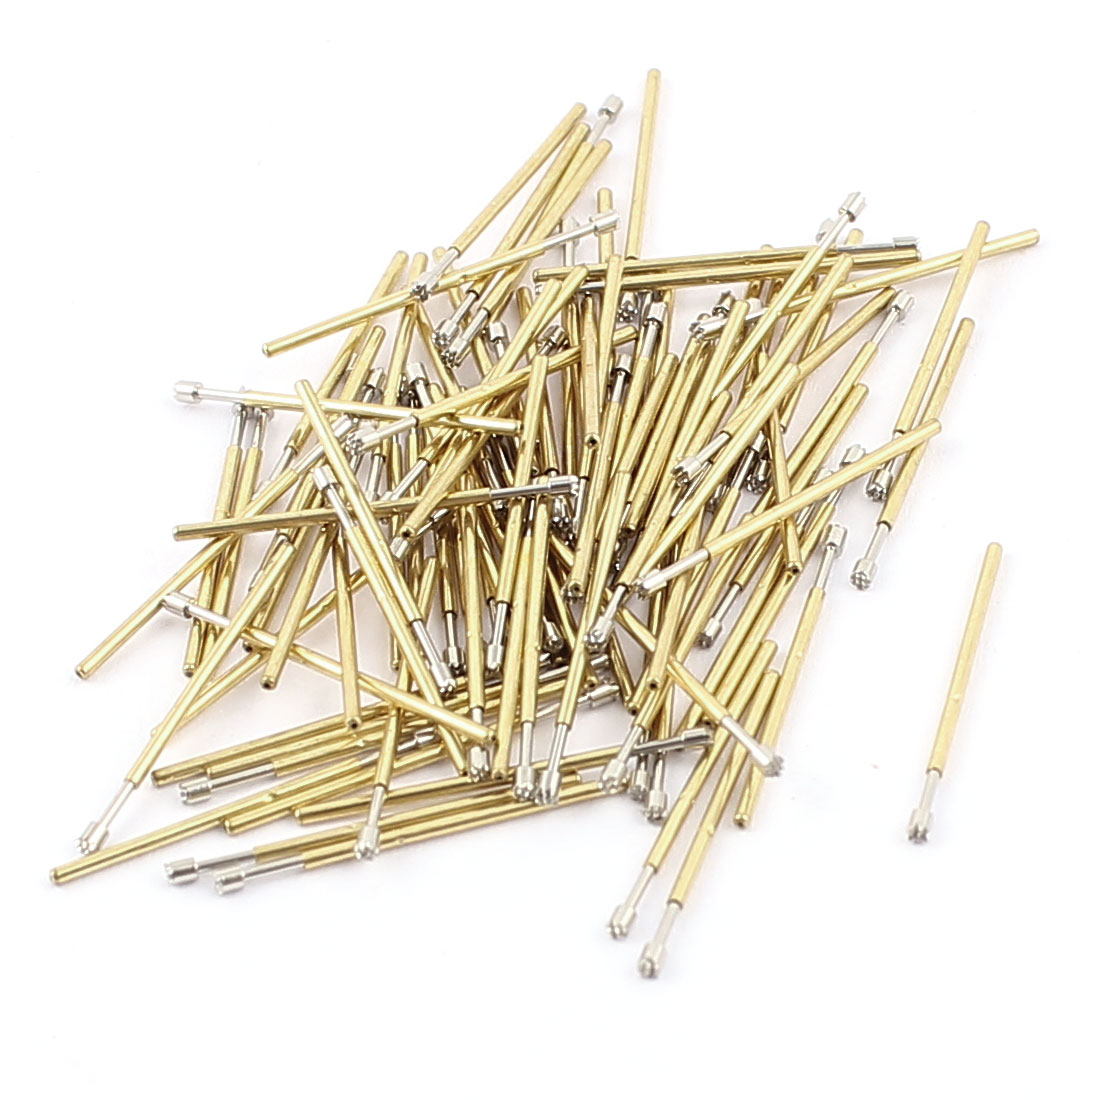 100Pcs P50H 1mm Dia Crown Tip PC Borad Spring Test Probes Testing Contact Pins Gold Tone 16.5mm